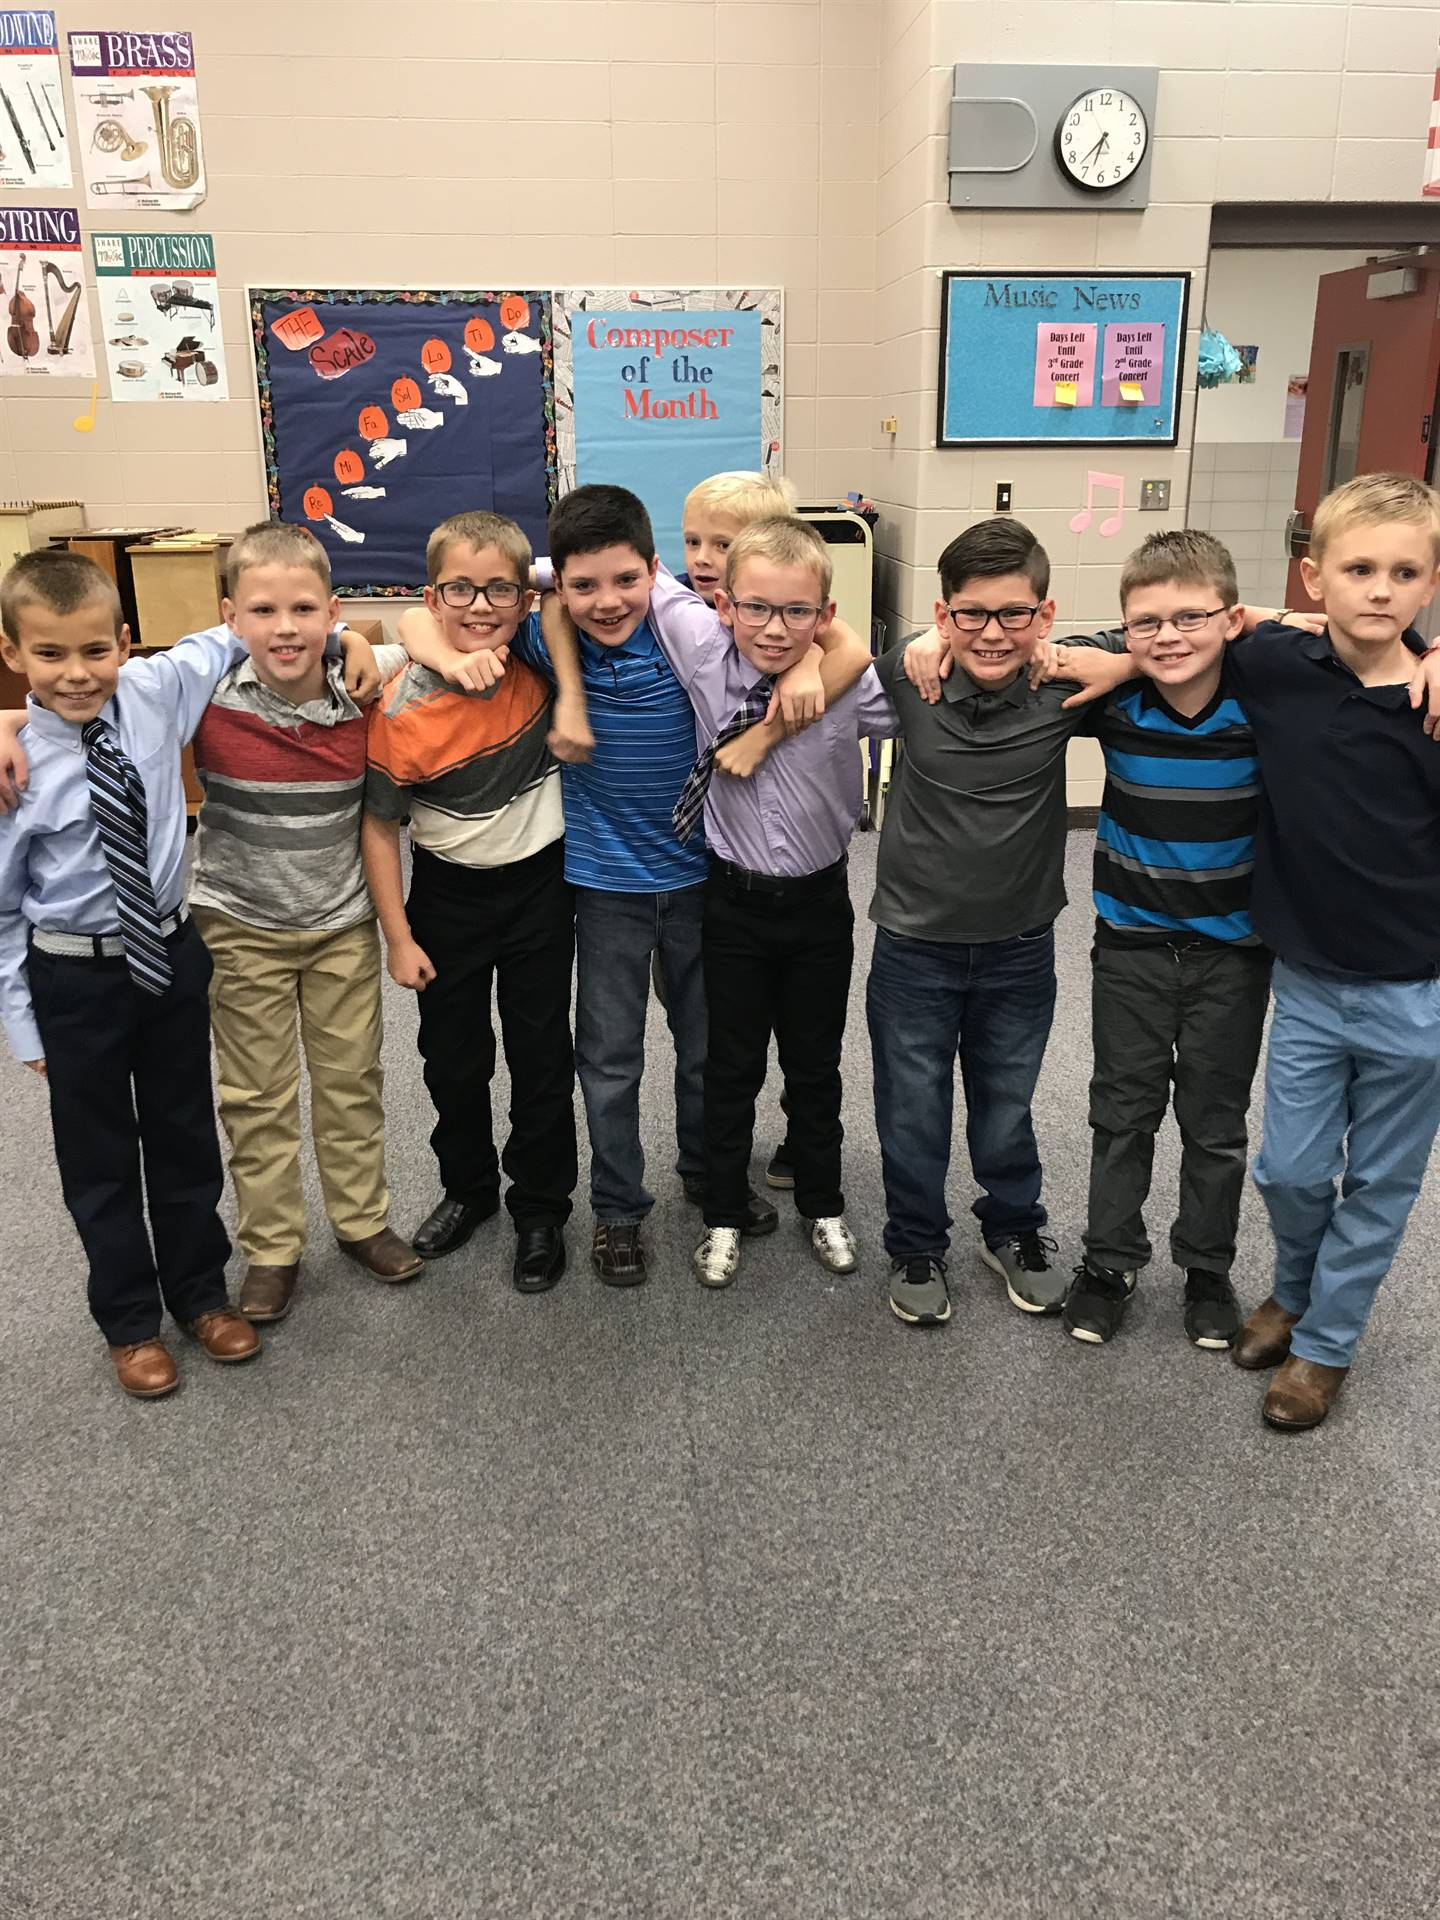 Third grade boys standing shoulder to shoulder and posing for a photo